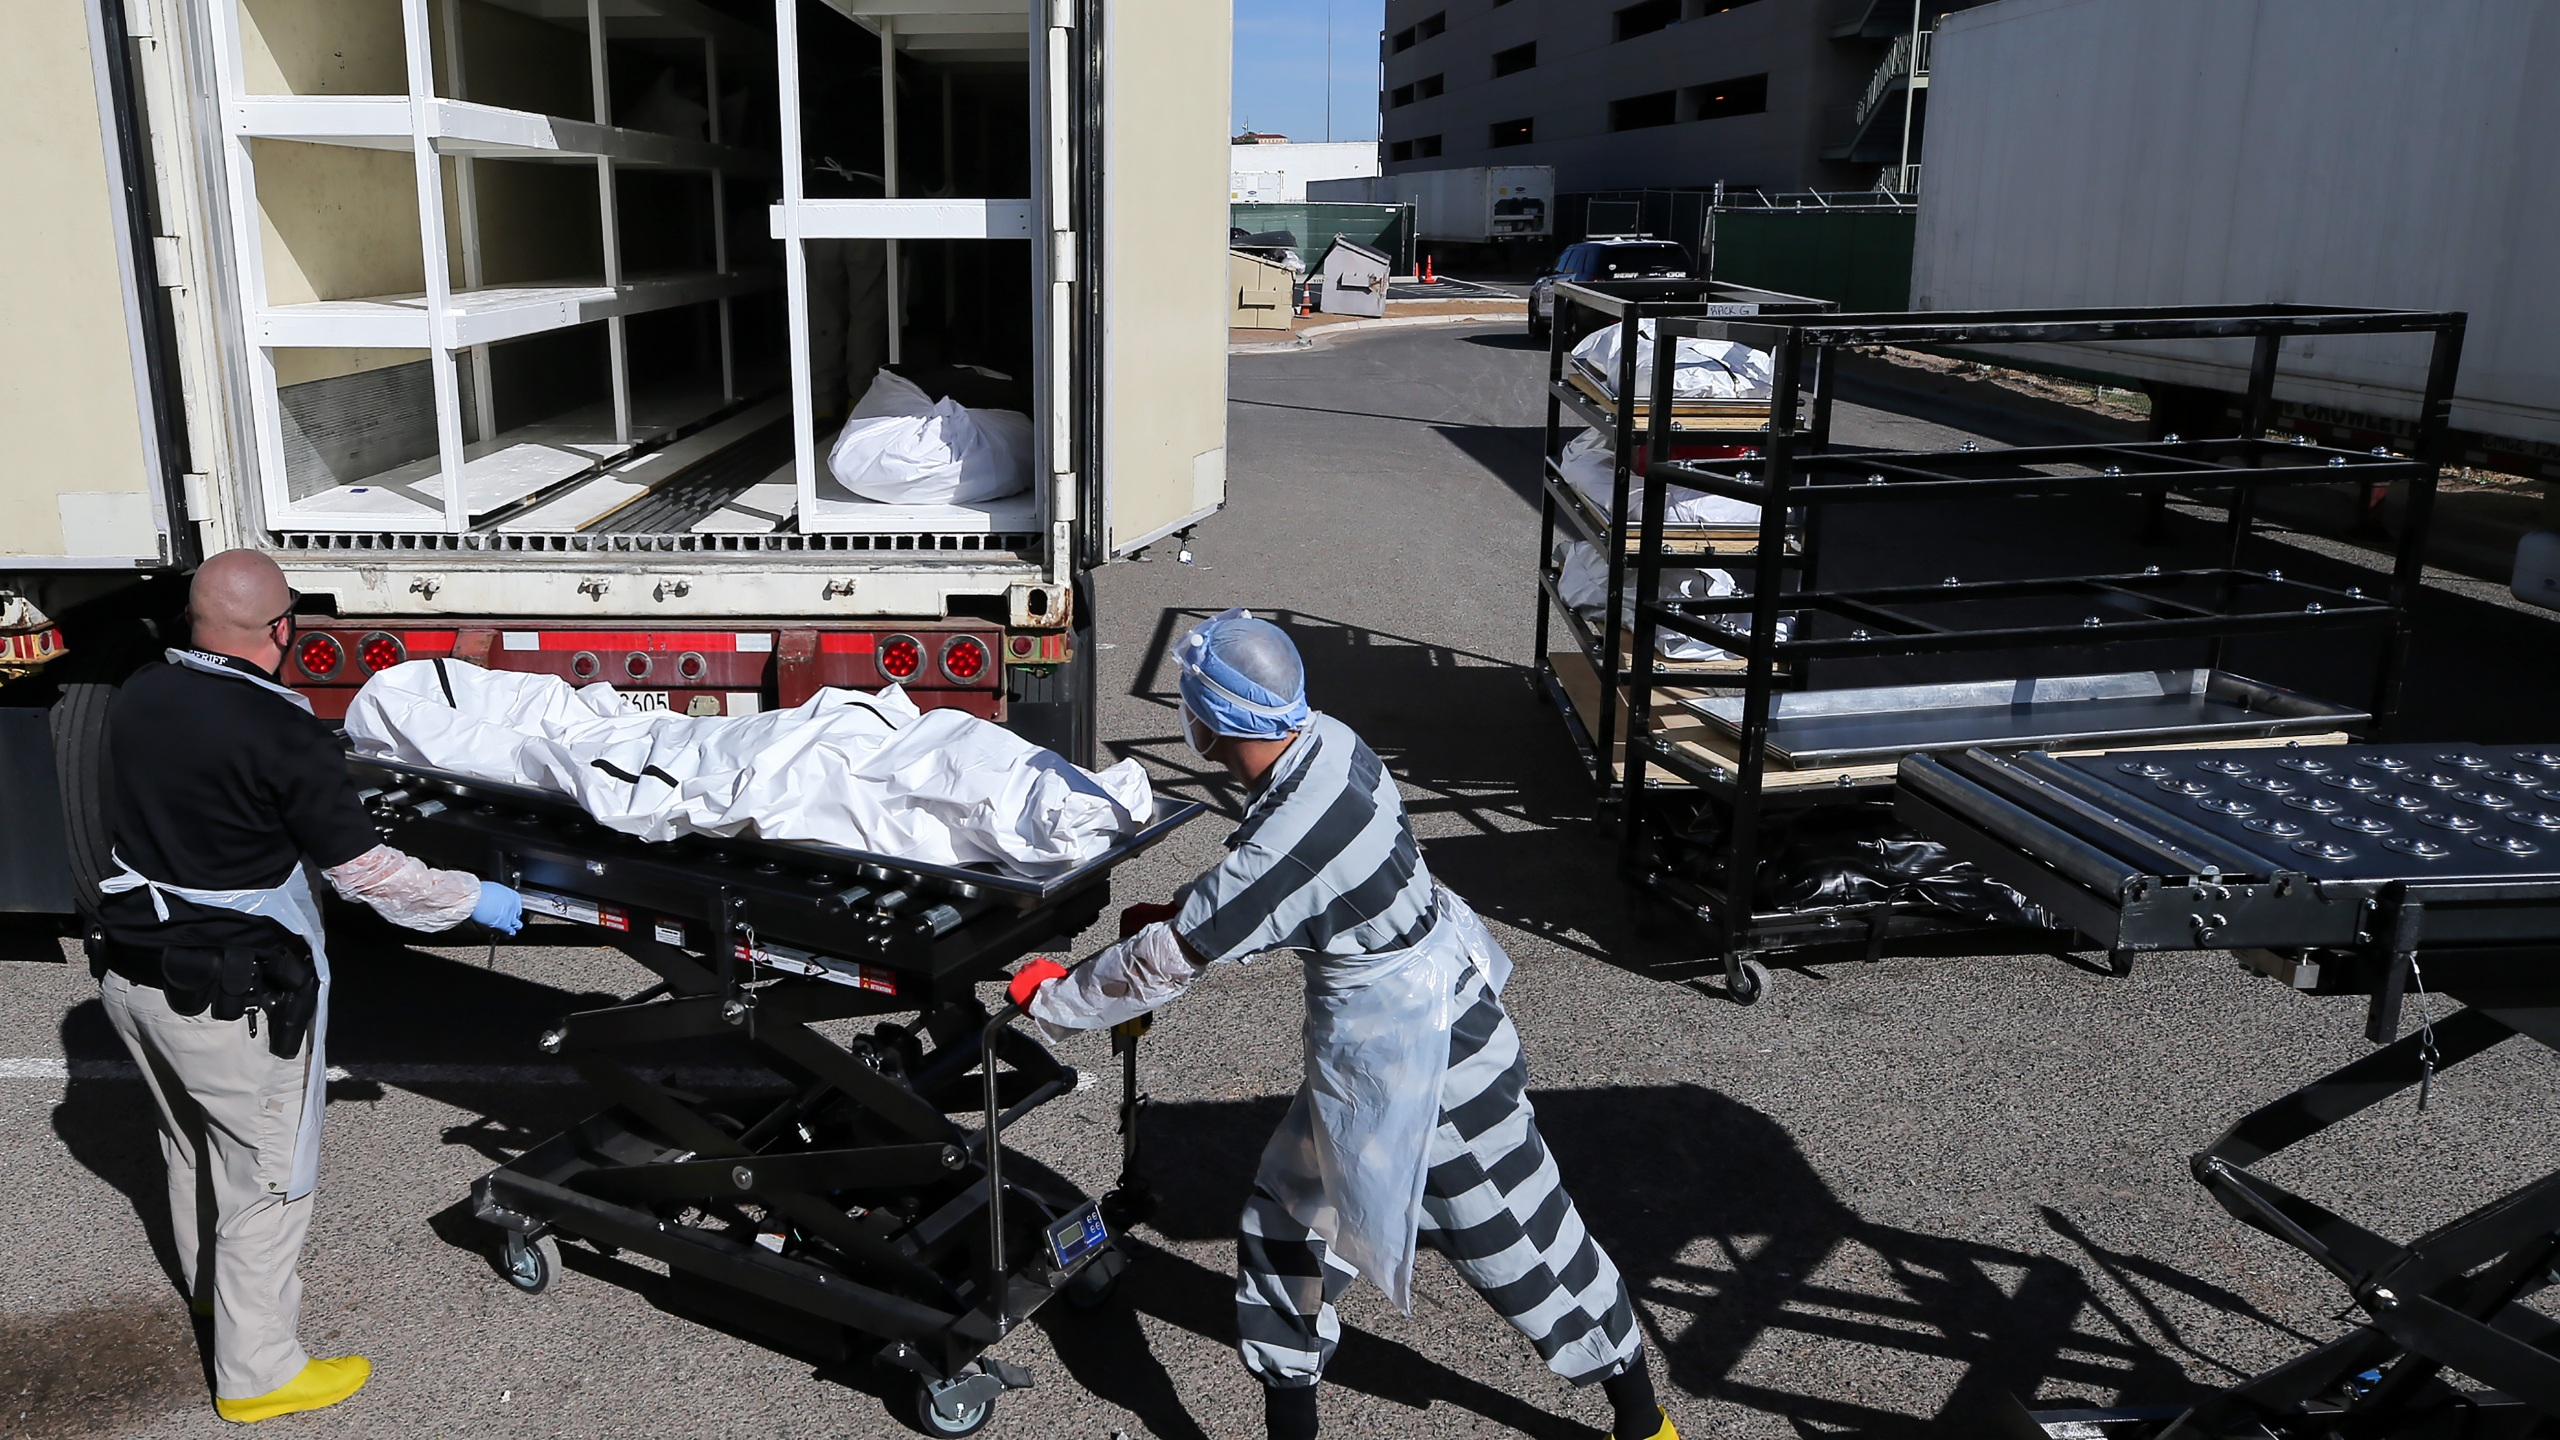 An inmate from El Paso County detention facility works while loading bodies wrapped in plastic into a refrigerated temporary morgue trailer in a parking lot of the El Paso County Medical Examiner's office on Nov. 17, 2020 in El Paso, Texas. (Mario Tama/Getty Images)